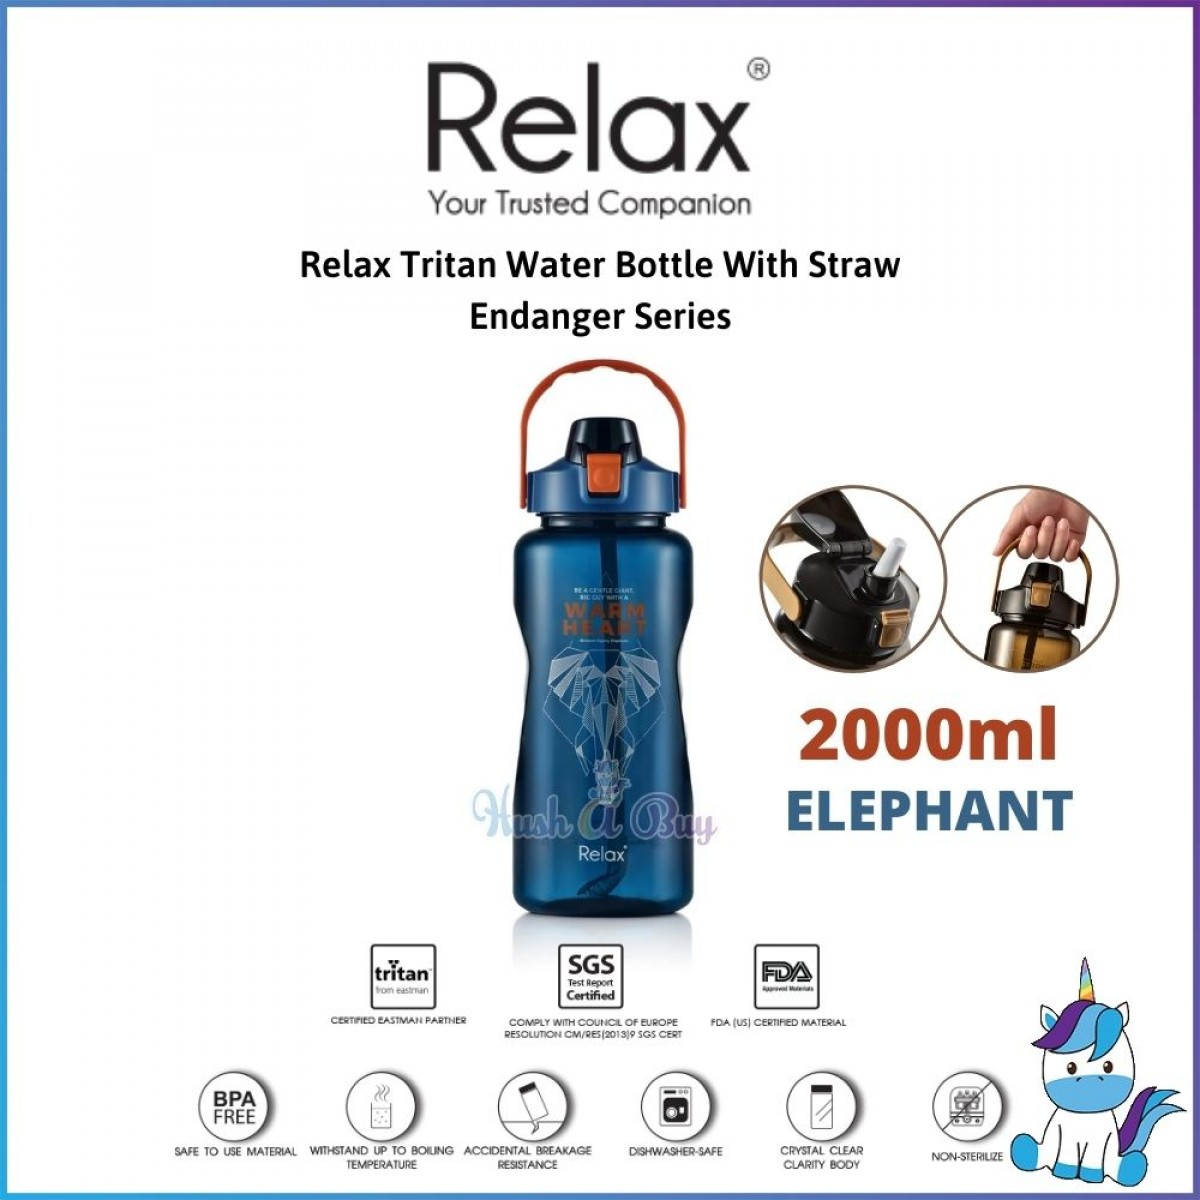 Relax Tritan Water Bottle With Straw 1500ml/2000ml - Endanger Series - Straw Water Bottle - Outdoor Bottle